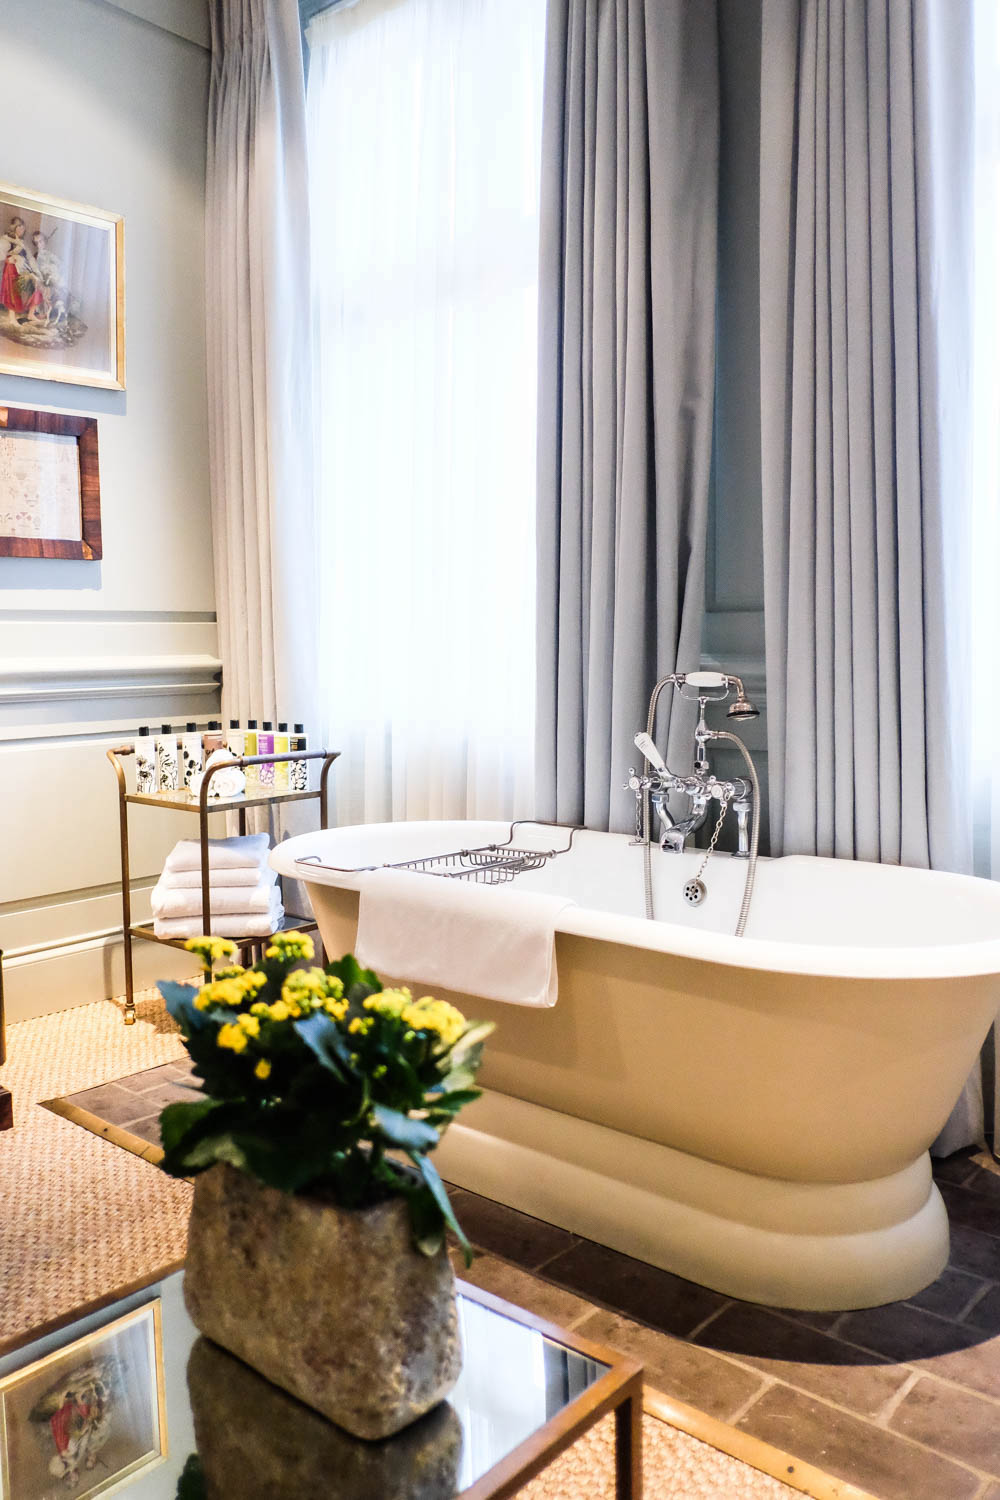 dean street townhouse - in room bath tub | 36 hours in london, the stripe